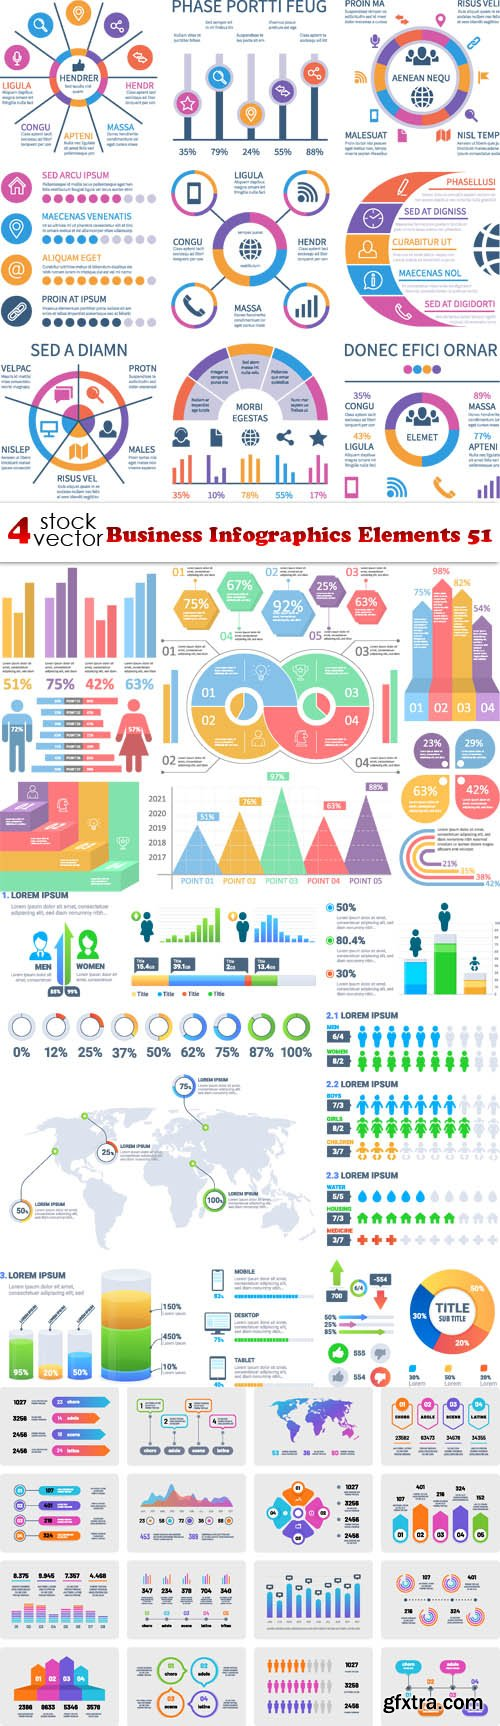 Vectors - Business Infographics Elements 51